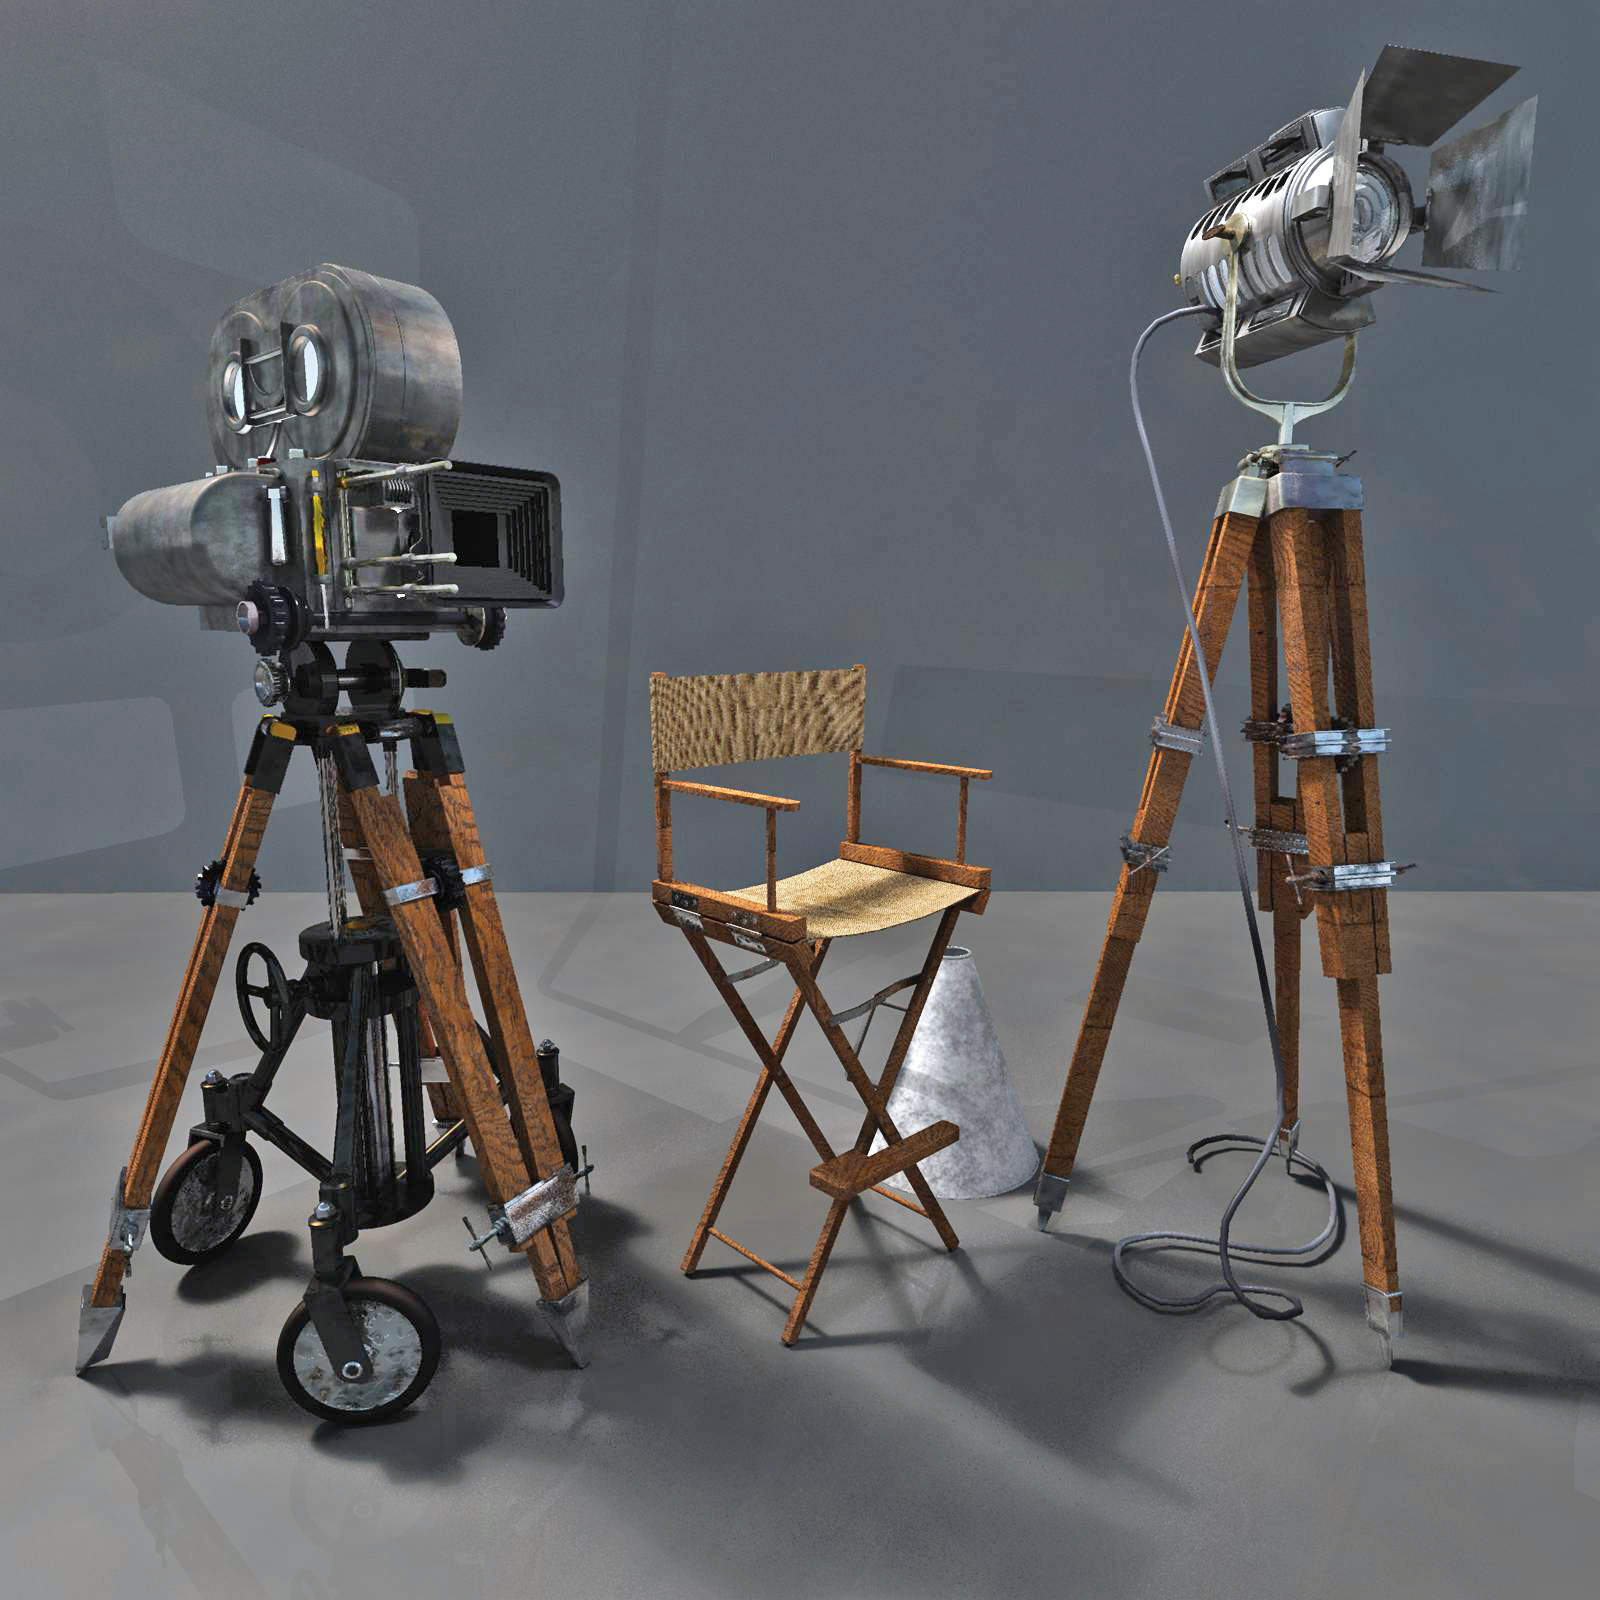 MS20 Motion Picture Camera & Lights by London224